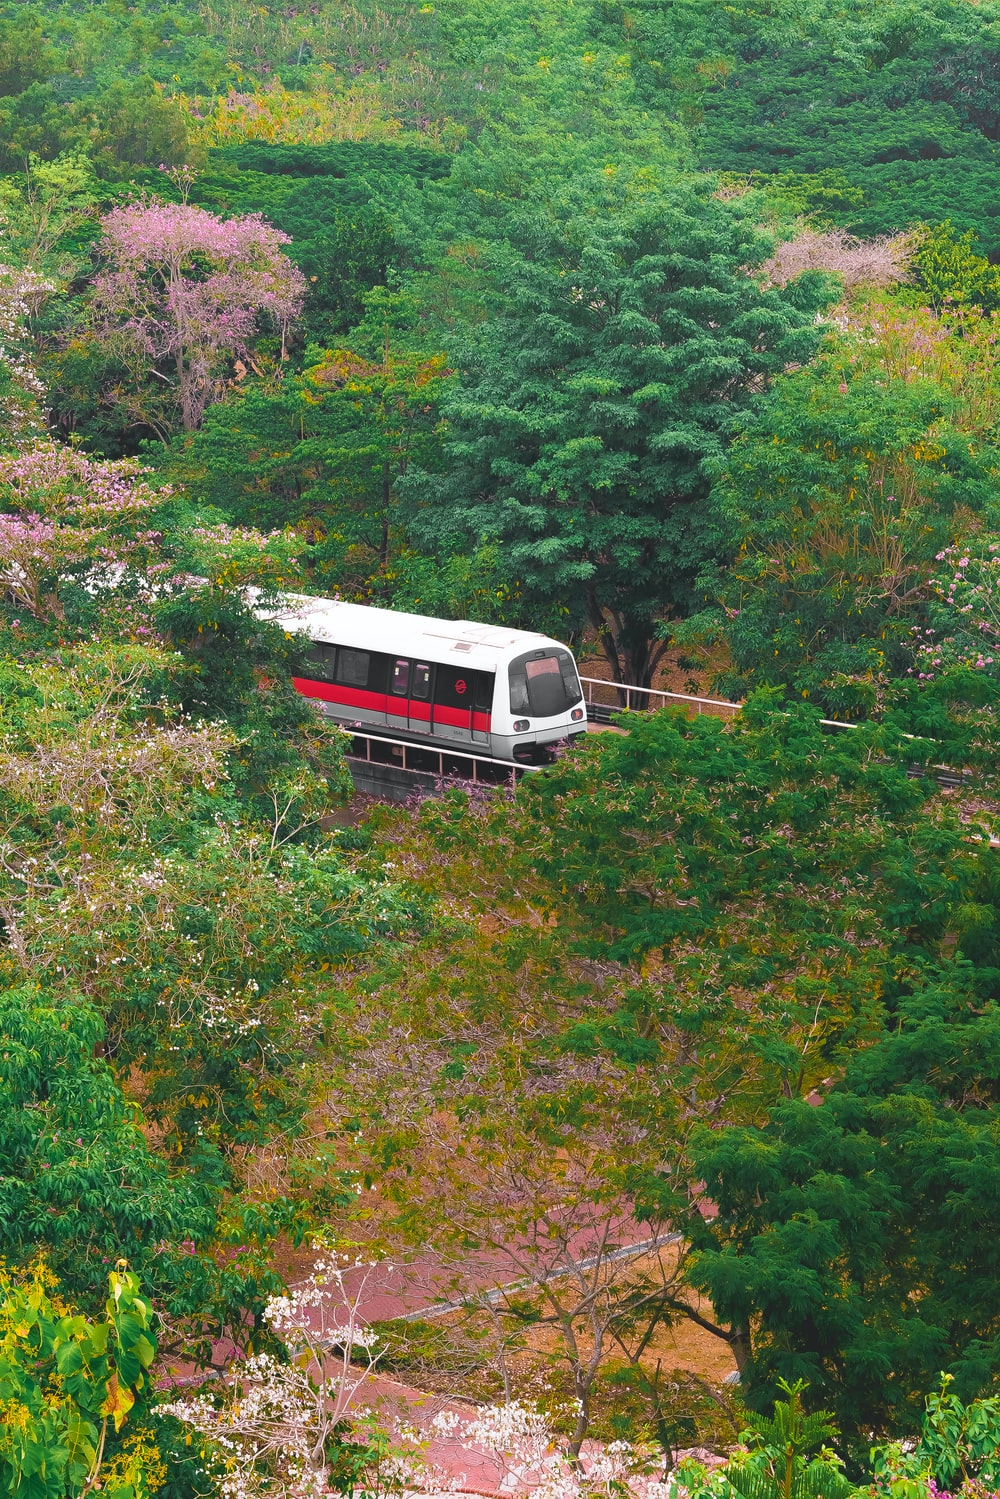 white and red train near trees